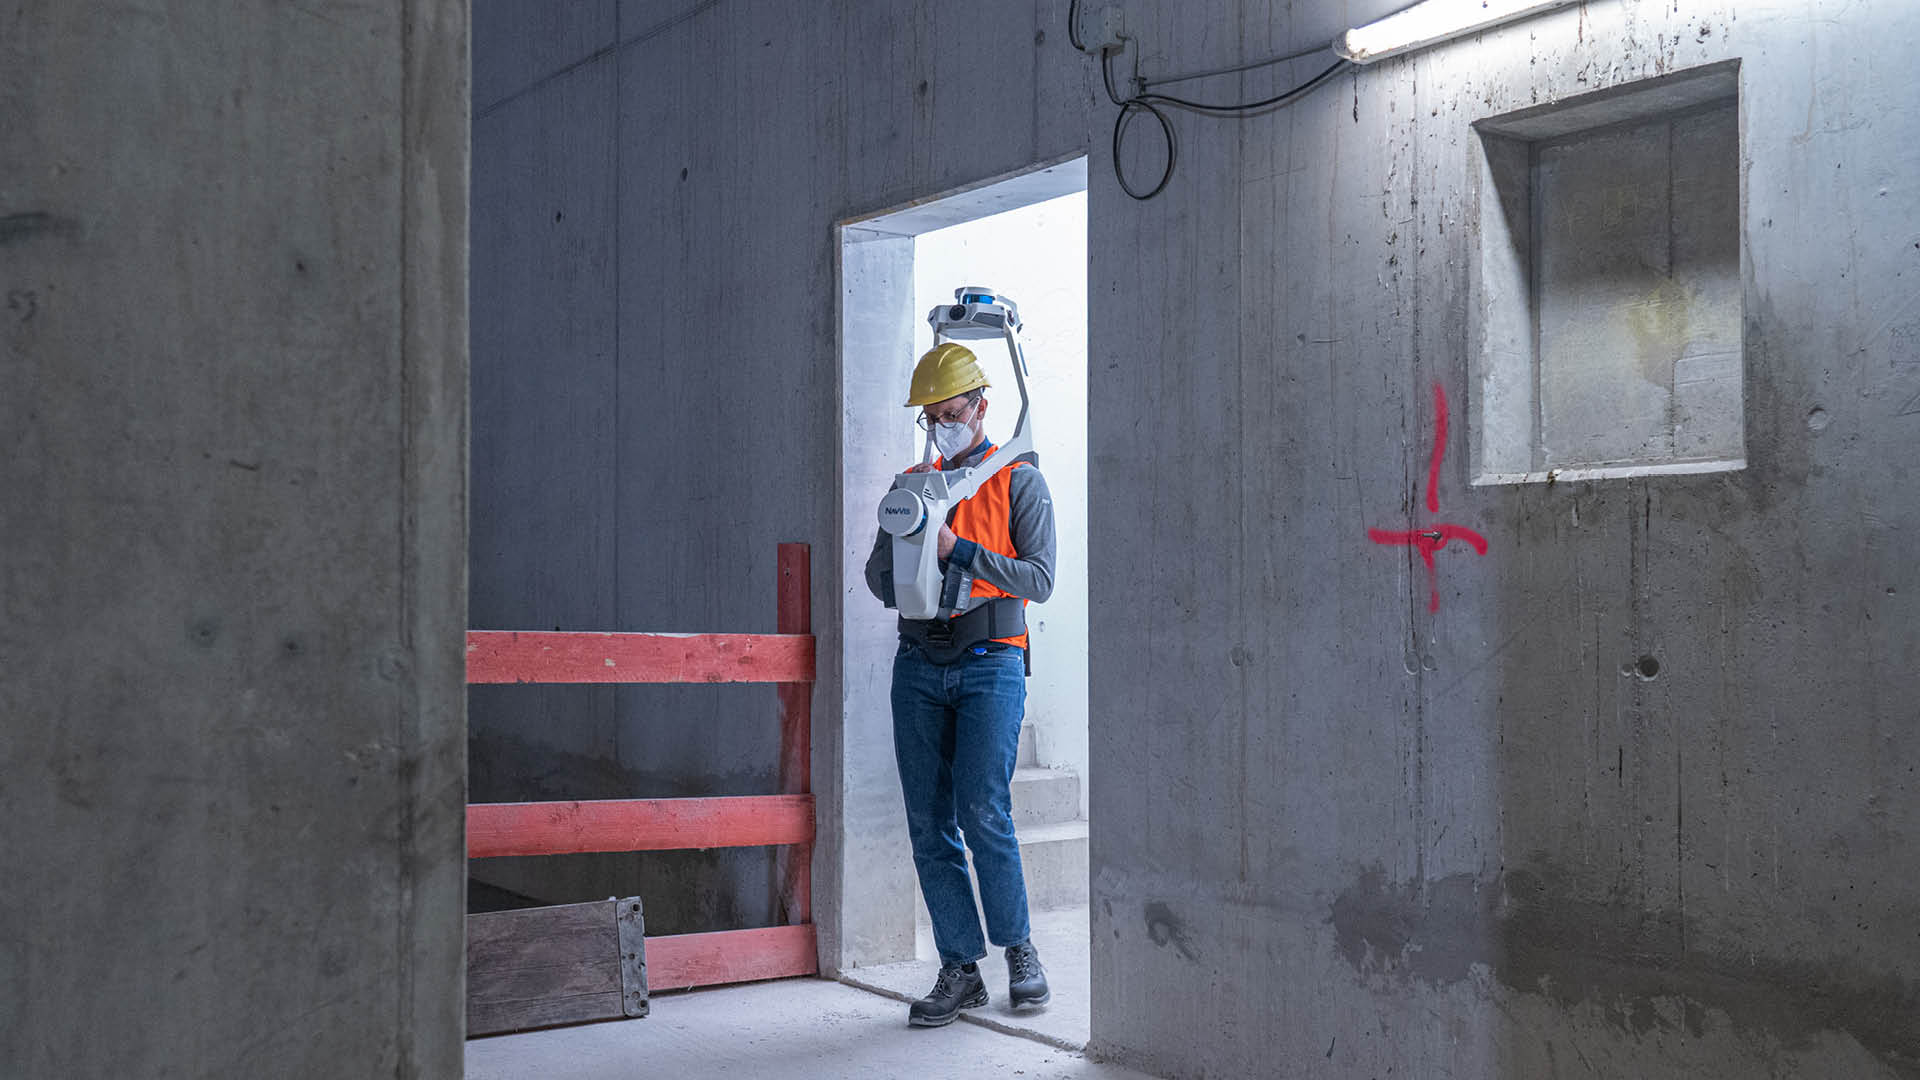 Useful tips on project planning for scan-to-BIM